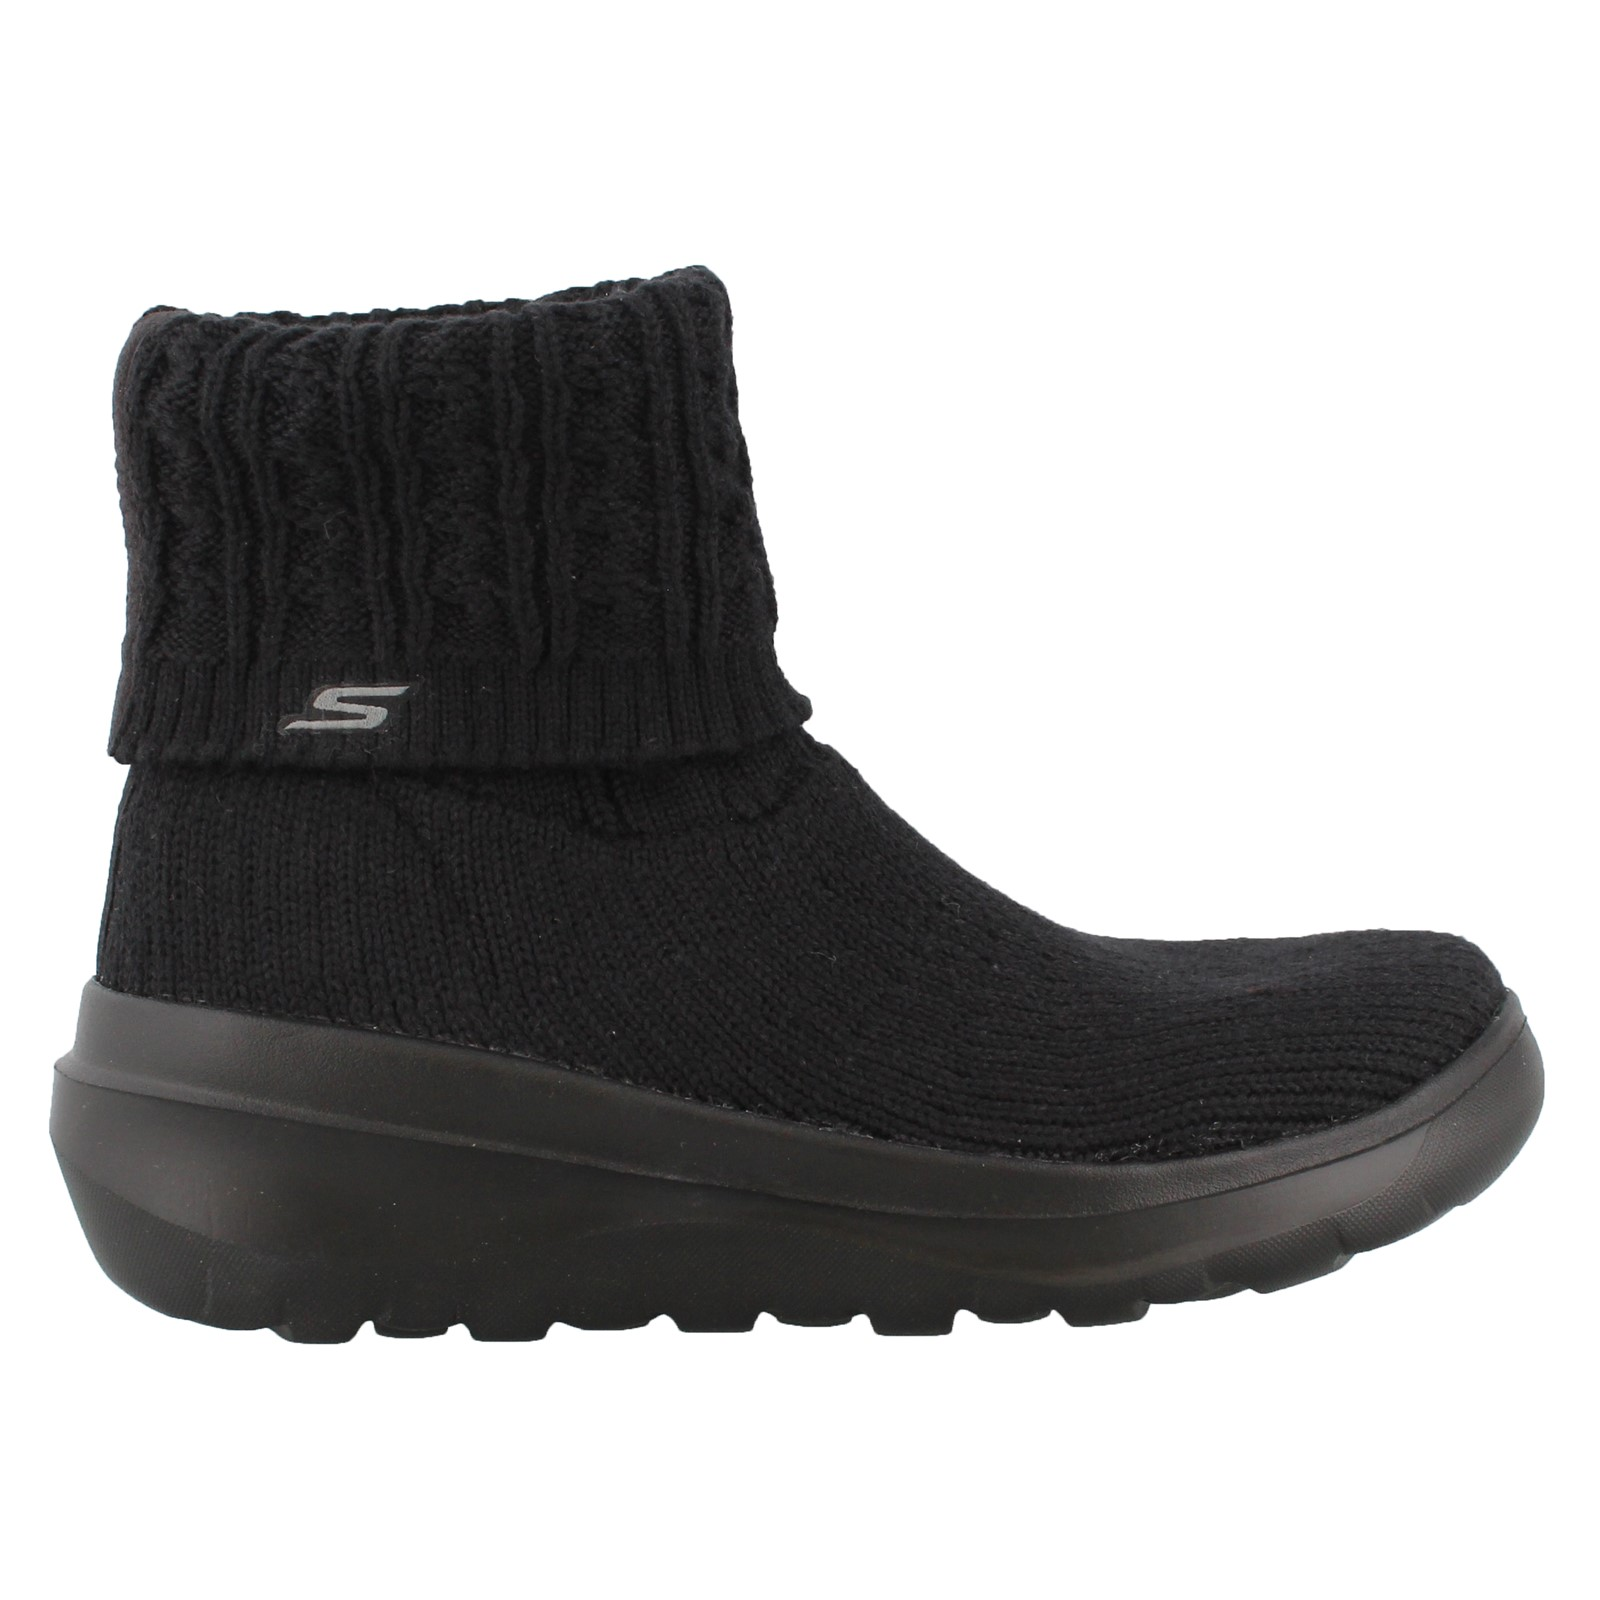 skechers performance boots